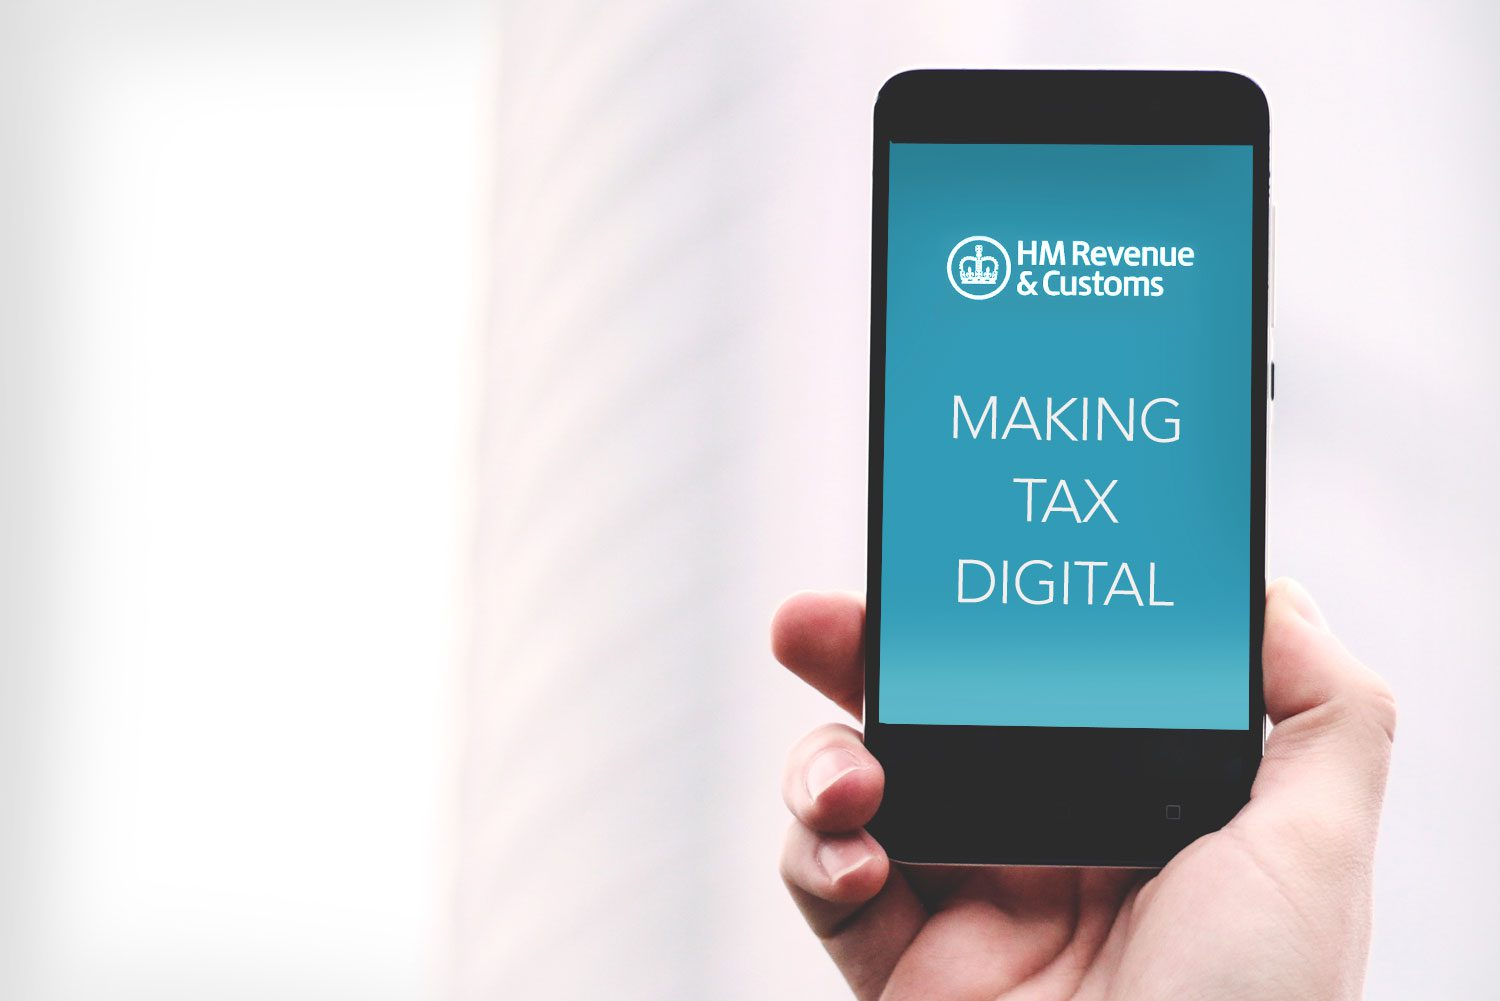 mobile phone showing making tax digital words